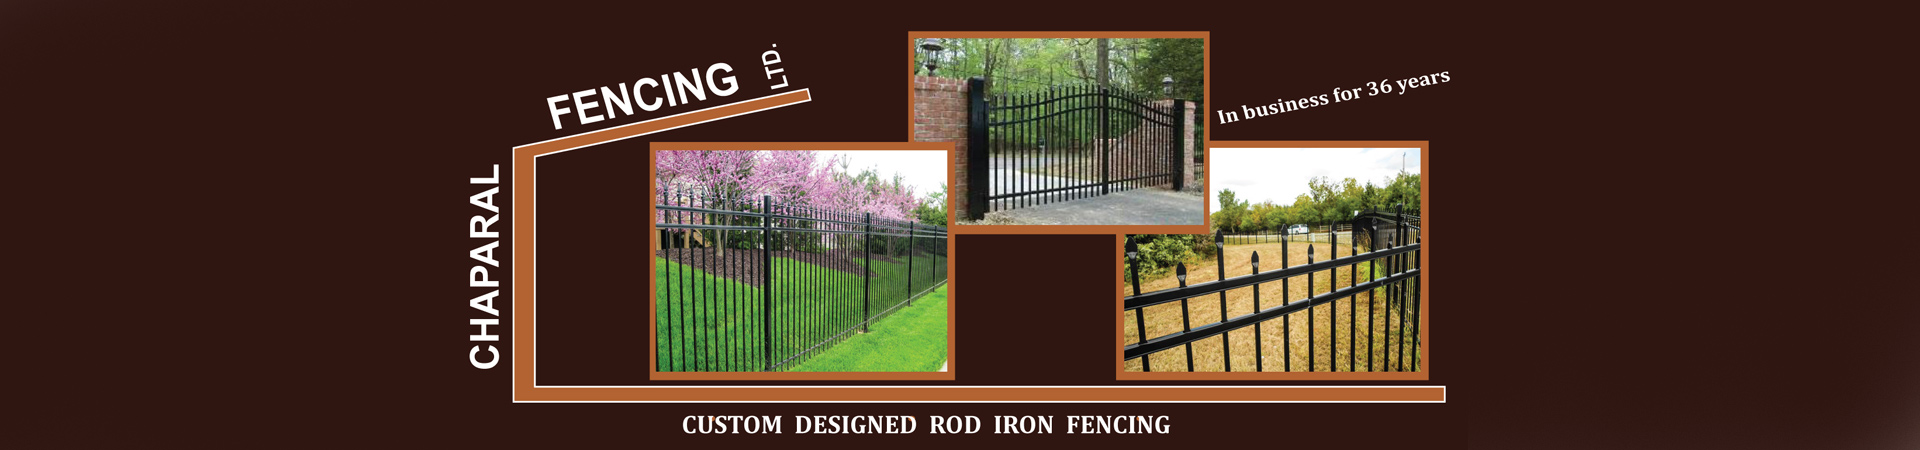 road iron fencing